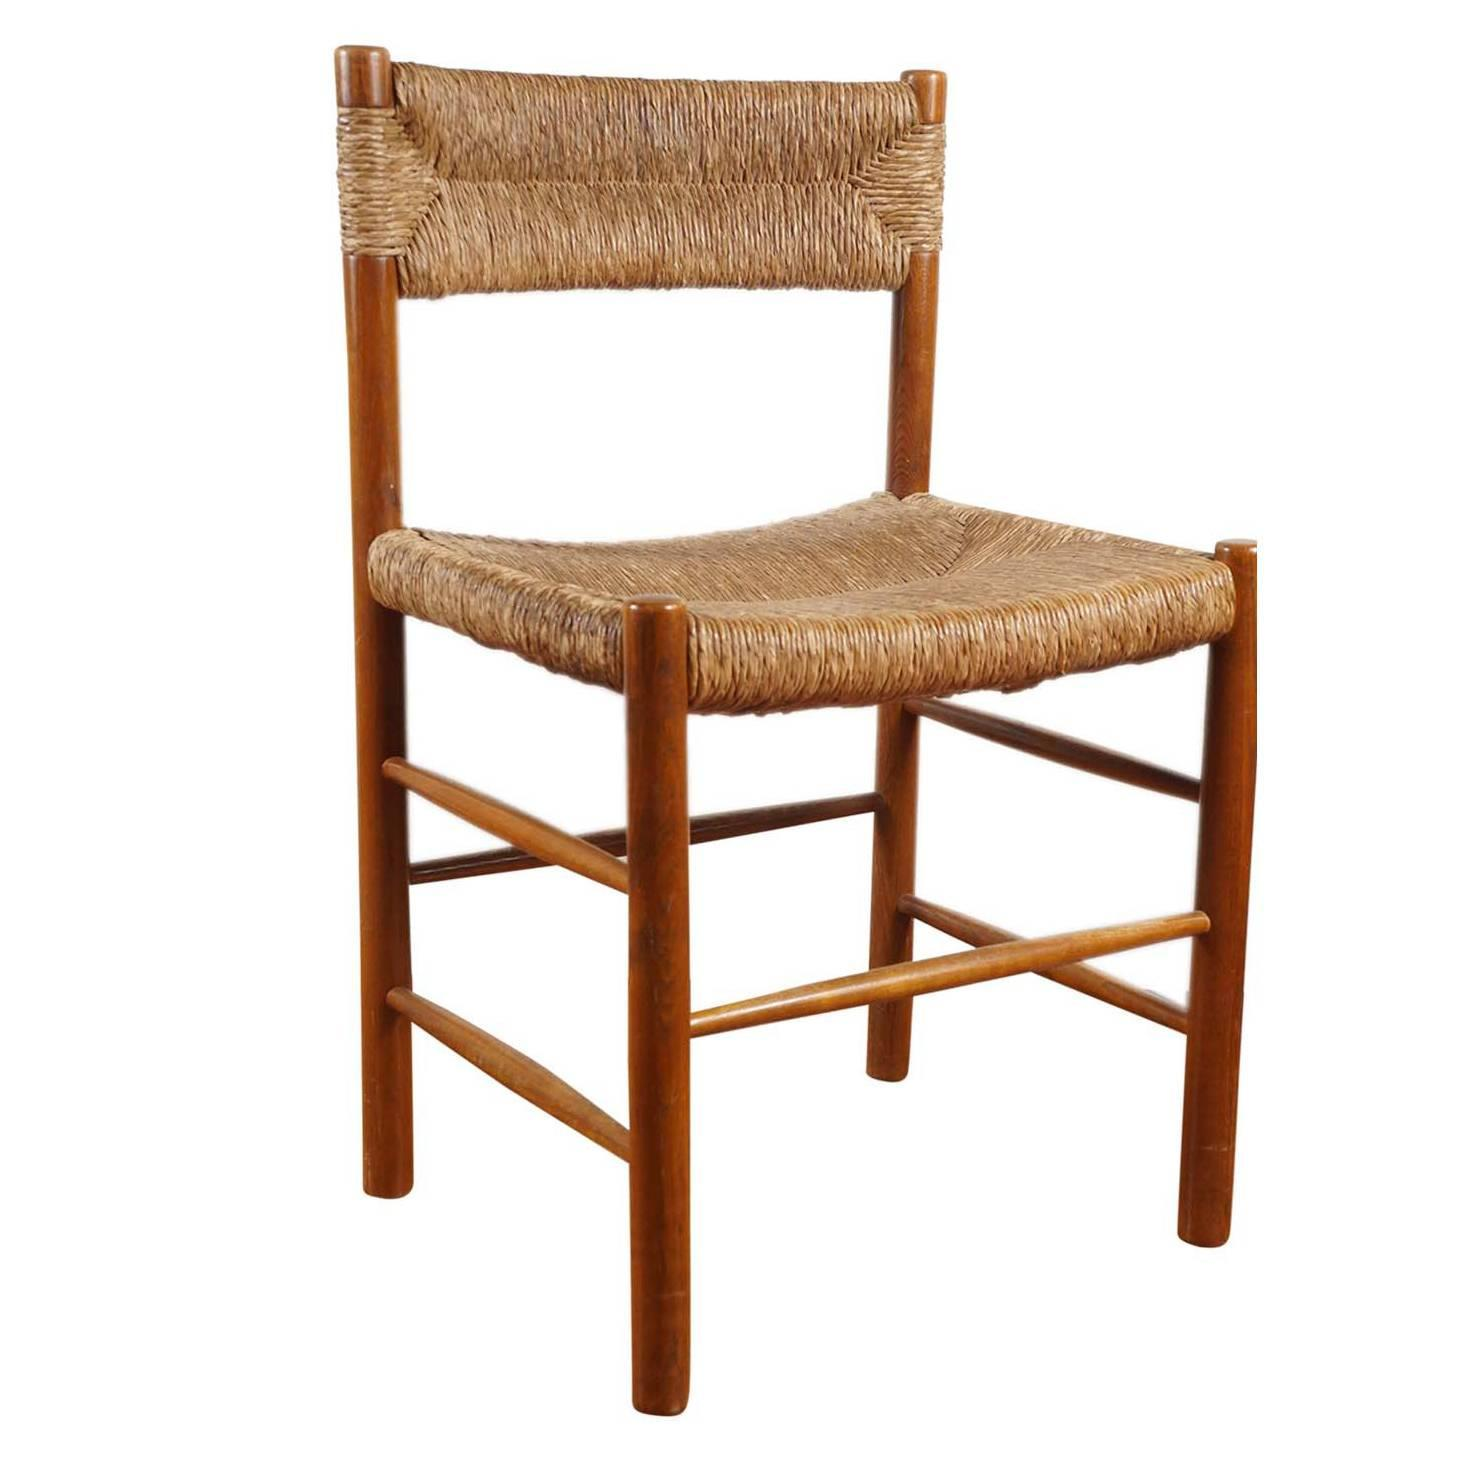 French Woven Dining Chair at 1stdibs